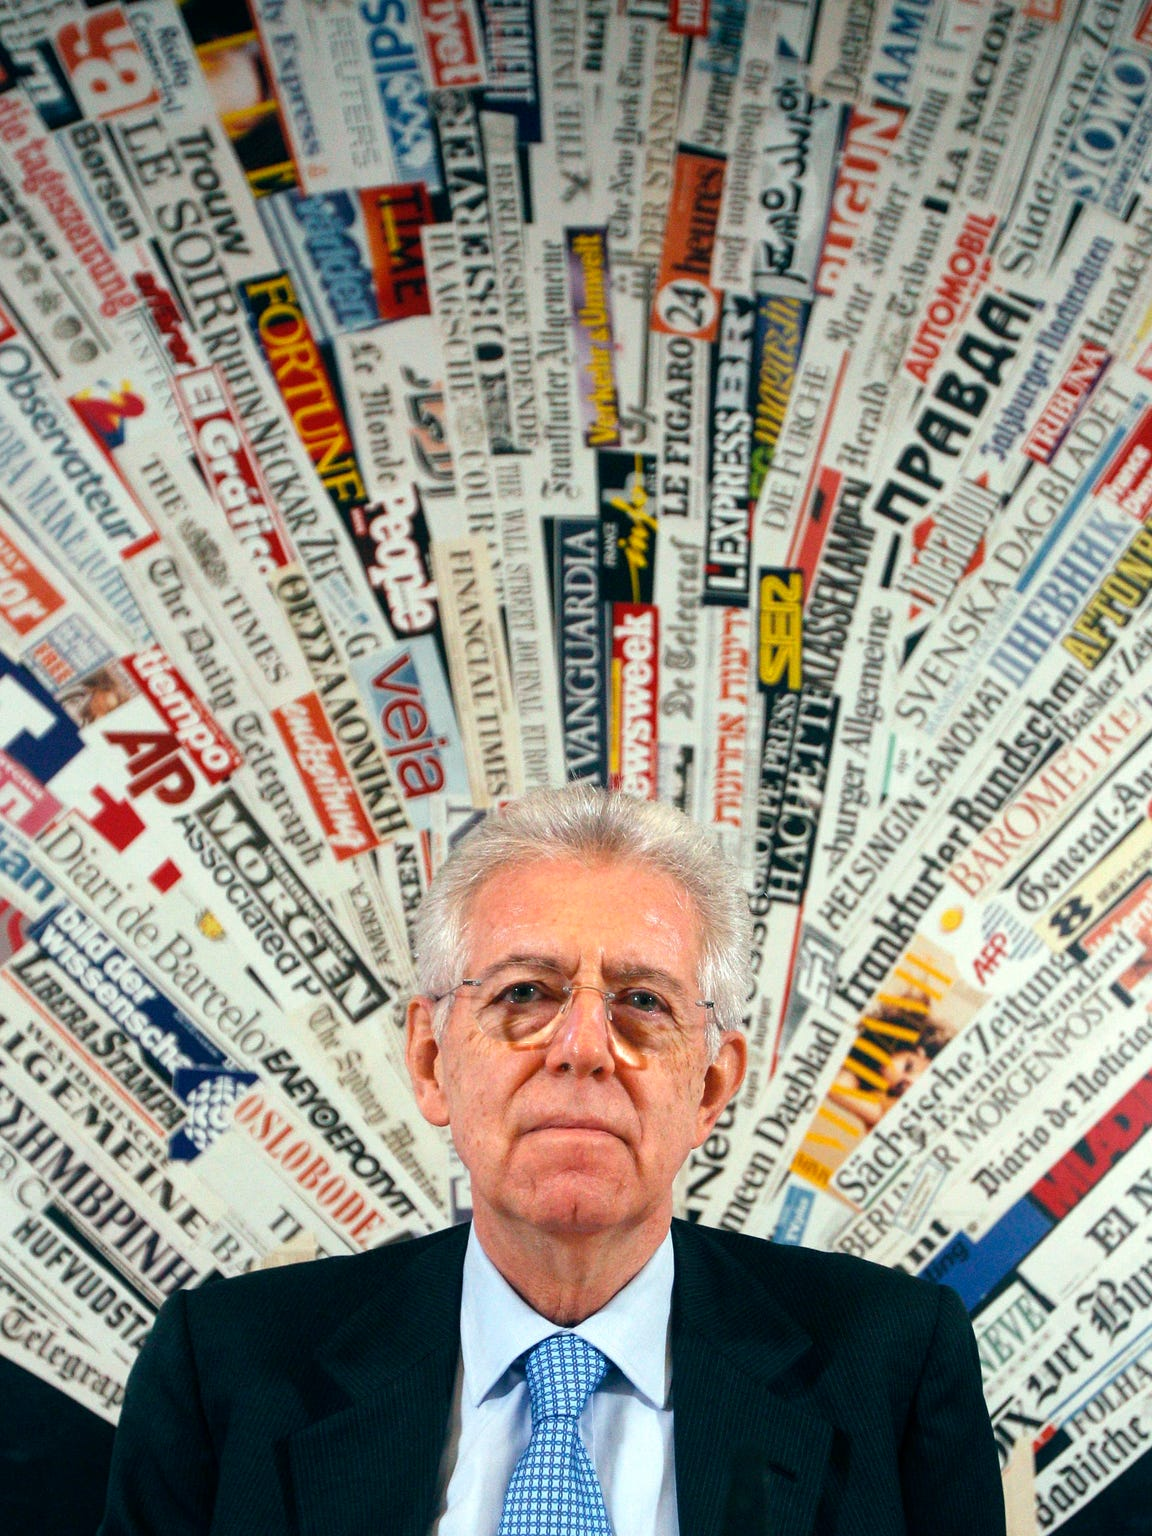 Italian Premier Mario Monti pauses as he speaks at